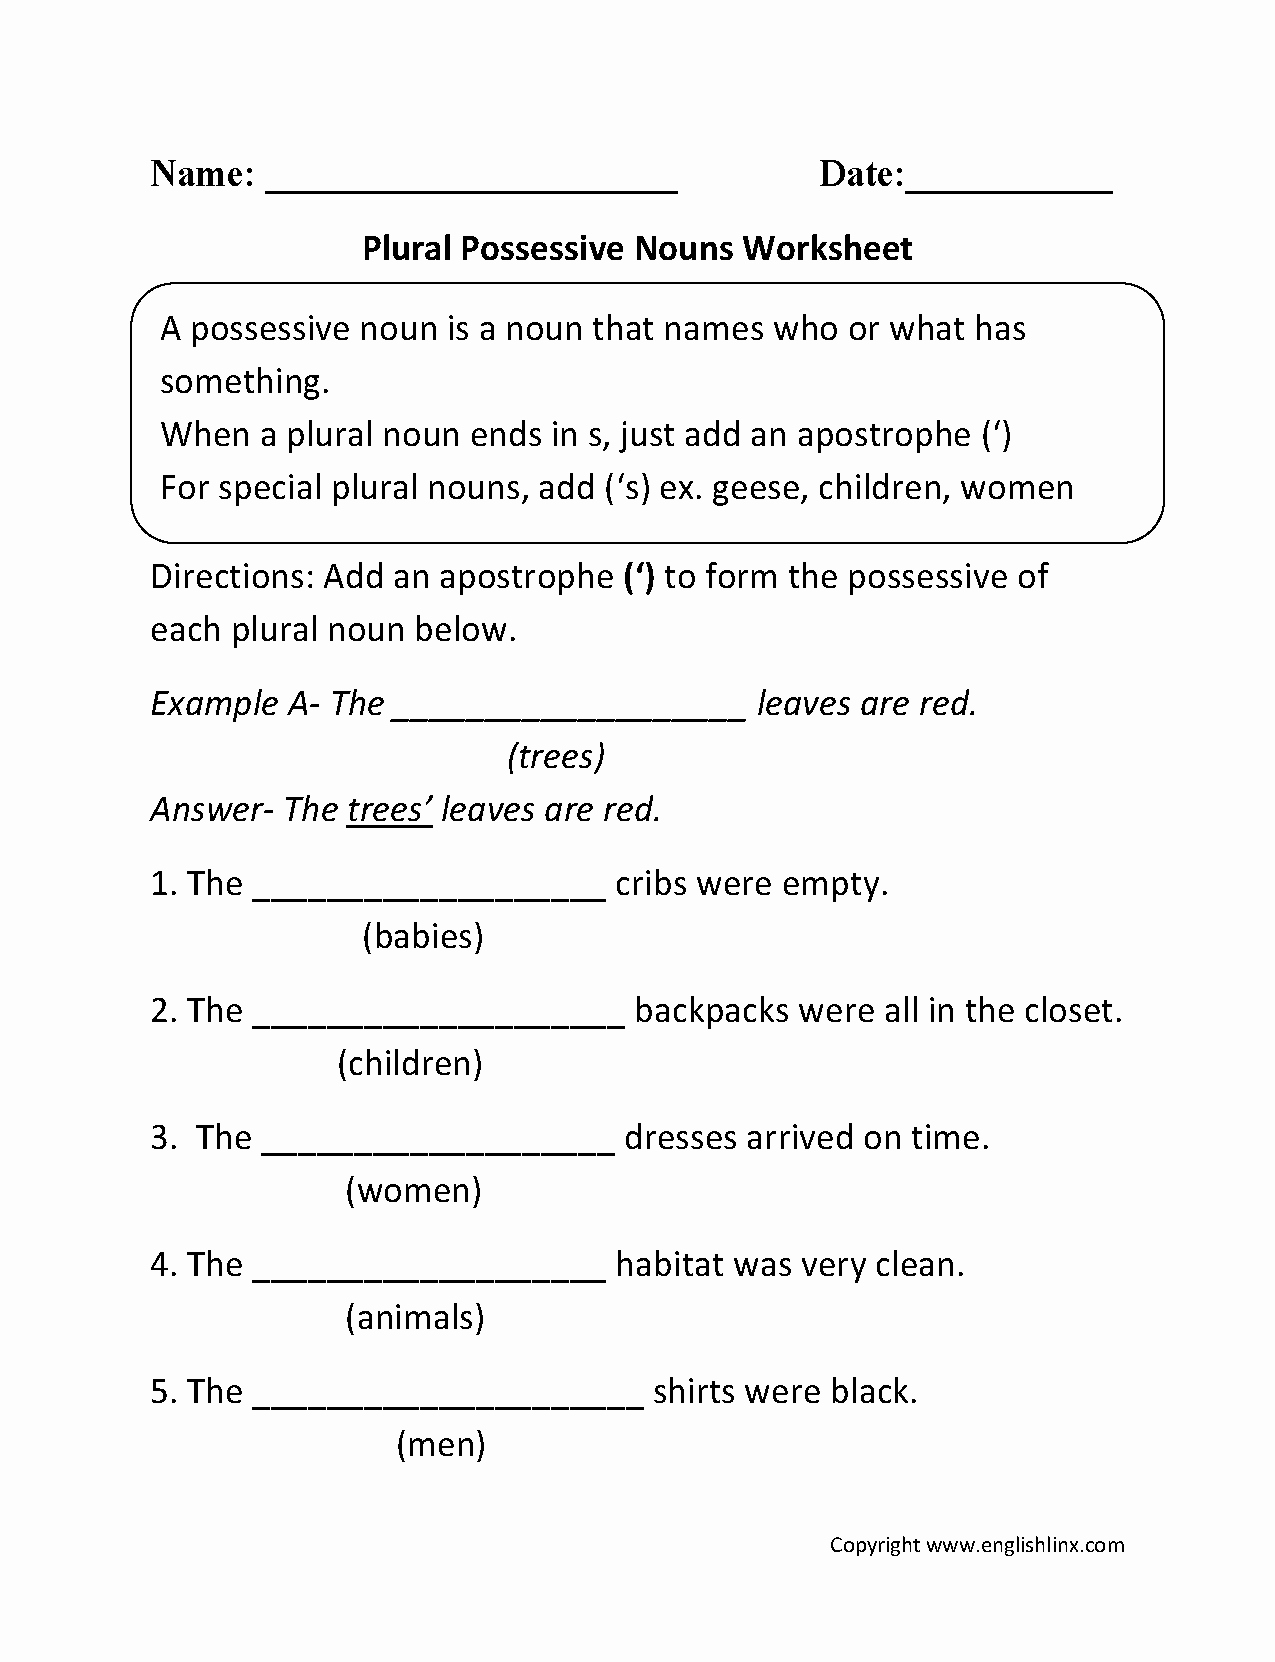 Singular Possessive Nouns Worksheet Inspirational Nouns Worksheets